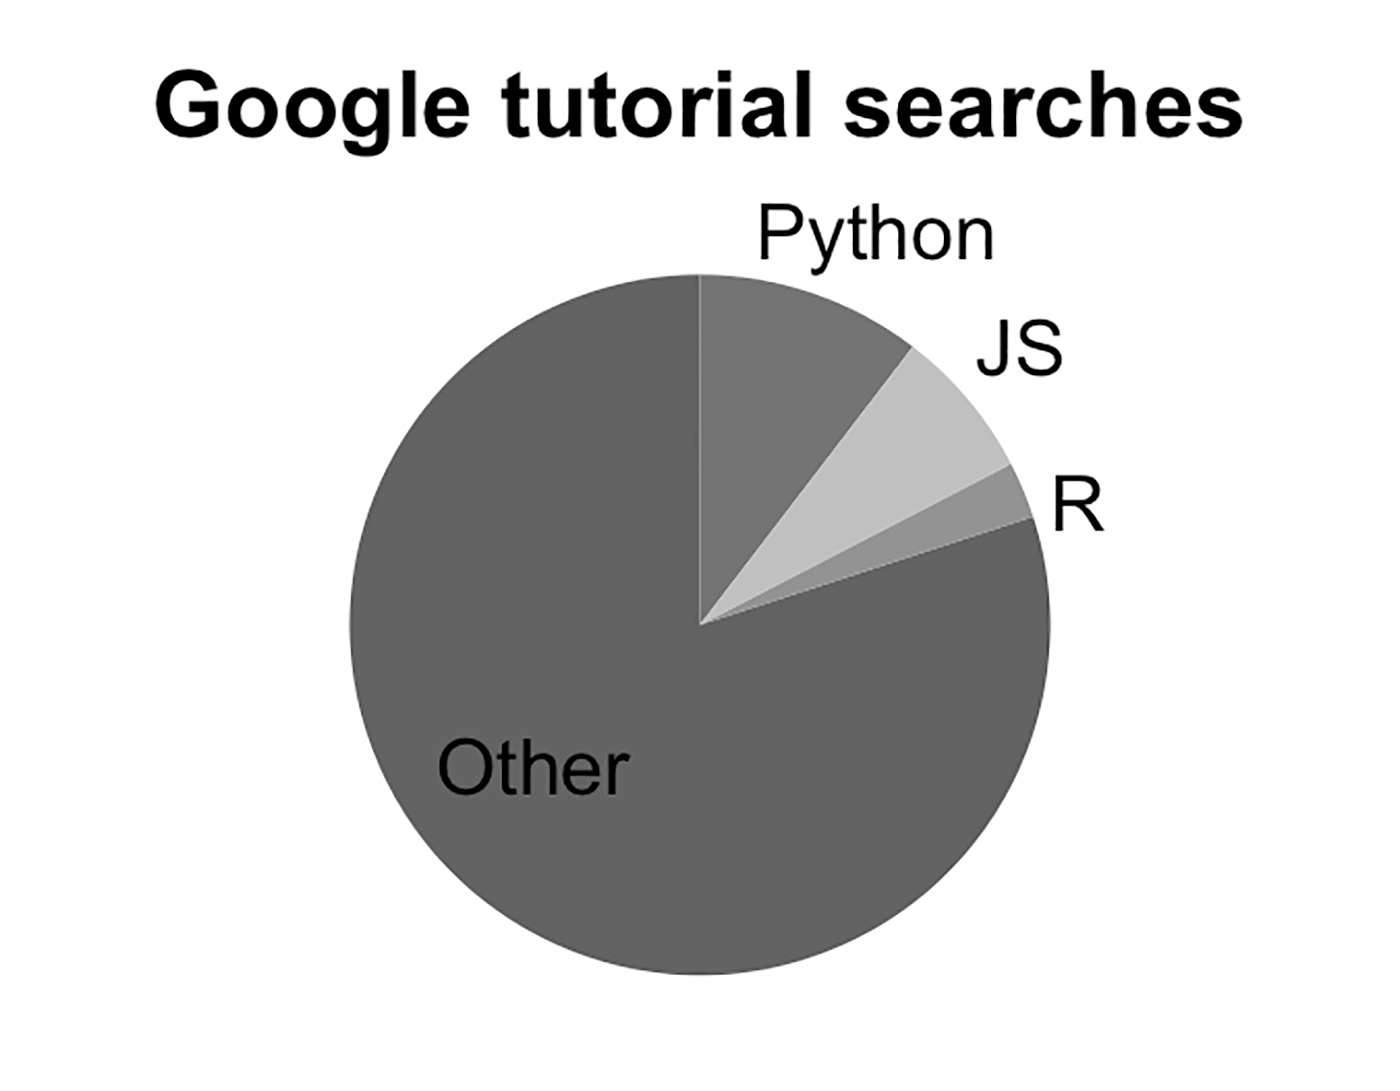 """pie chart showing Google search frequency of popular programming languages, including """"Other"""" category"""